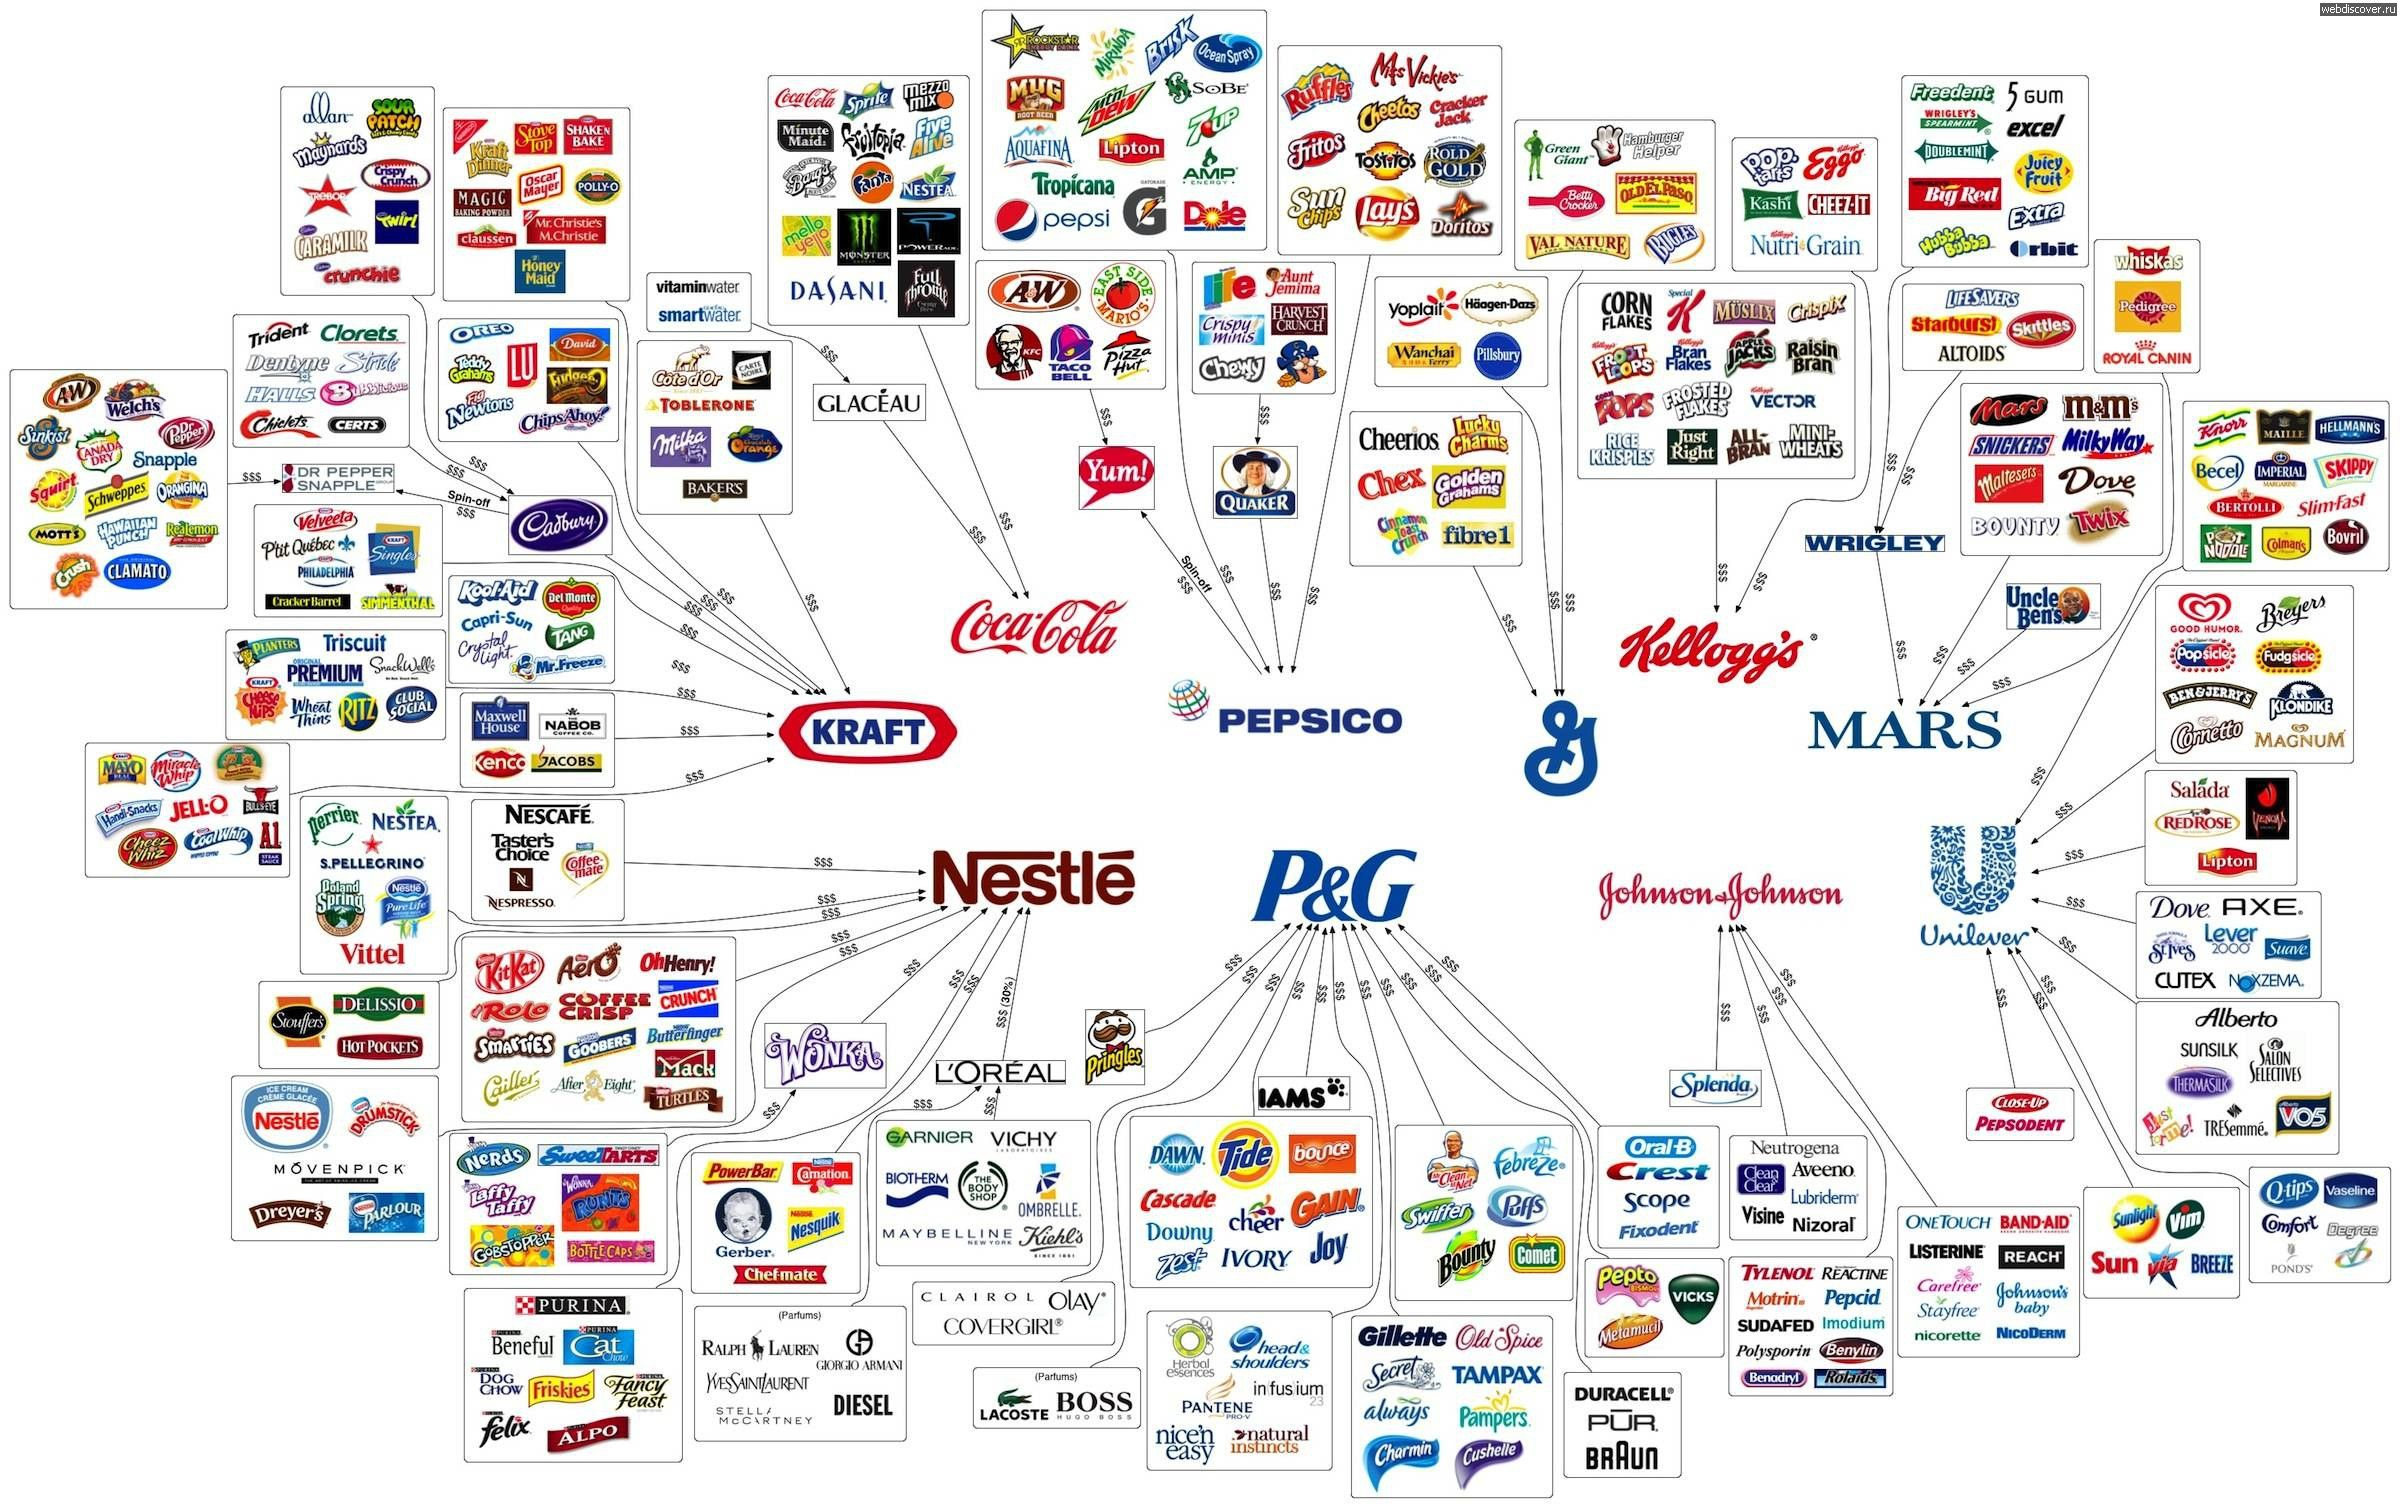 Fascinating graphics show who owns all the major brands in